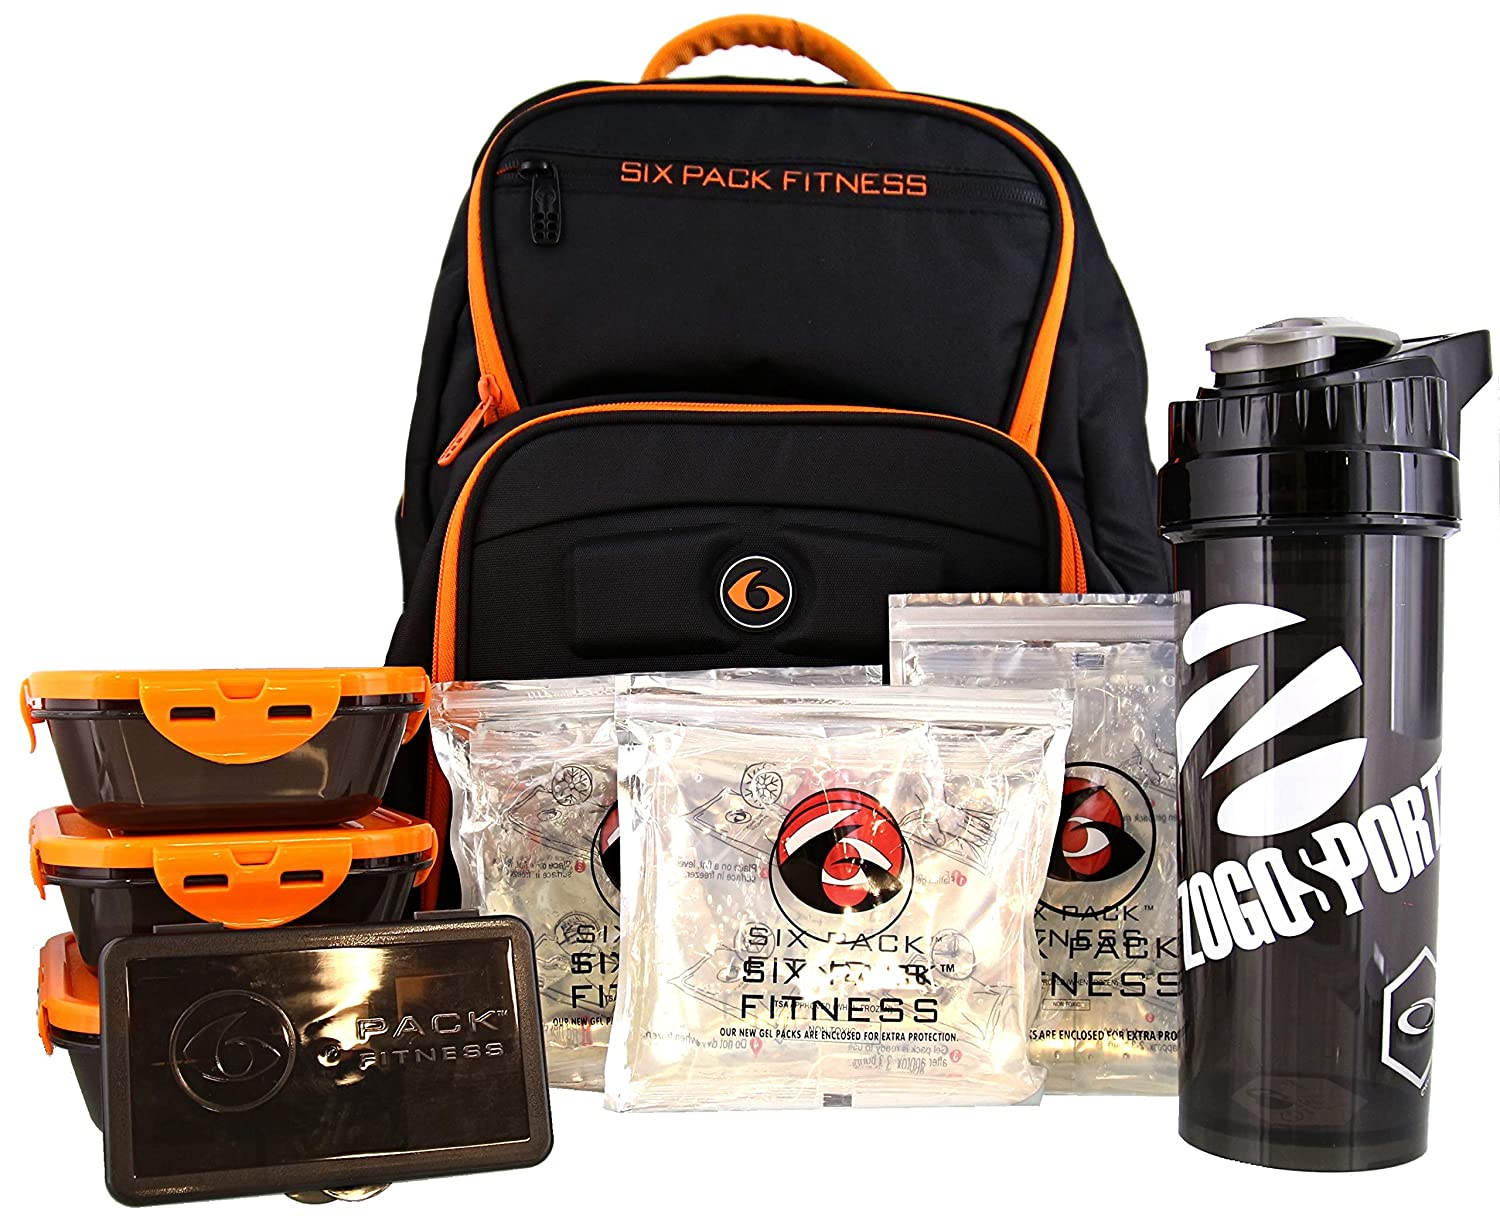 8b18a7691686 Amazon.com  6 Pack Fitness Expedition Backpack W Removable Meal Management  System 500 Black Neon Orange  Health   Personal Care